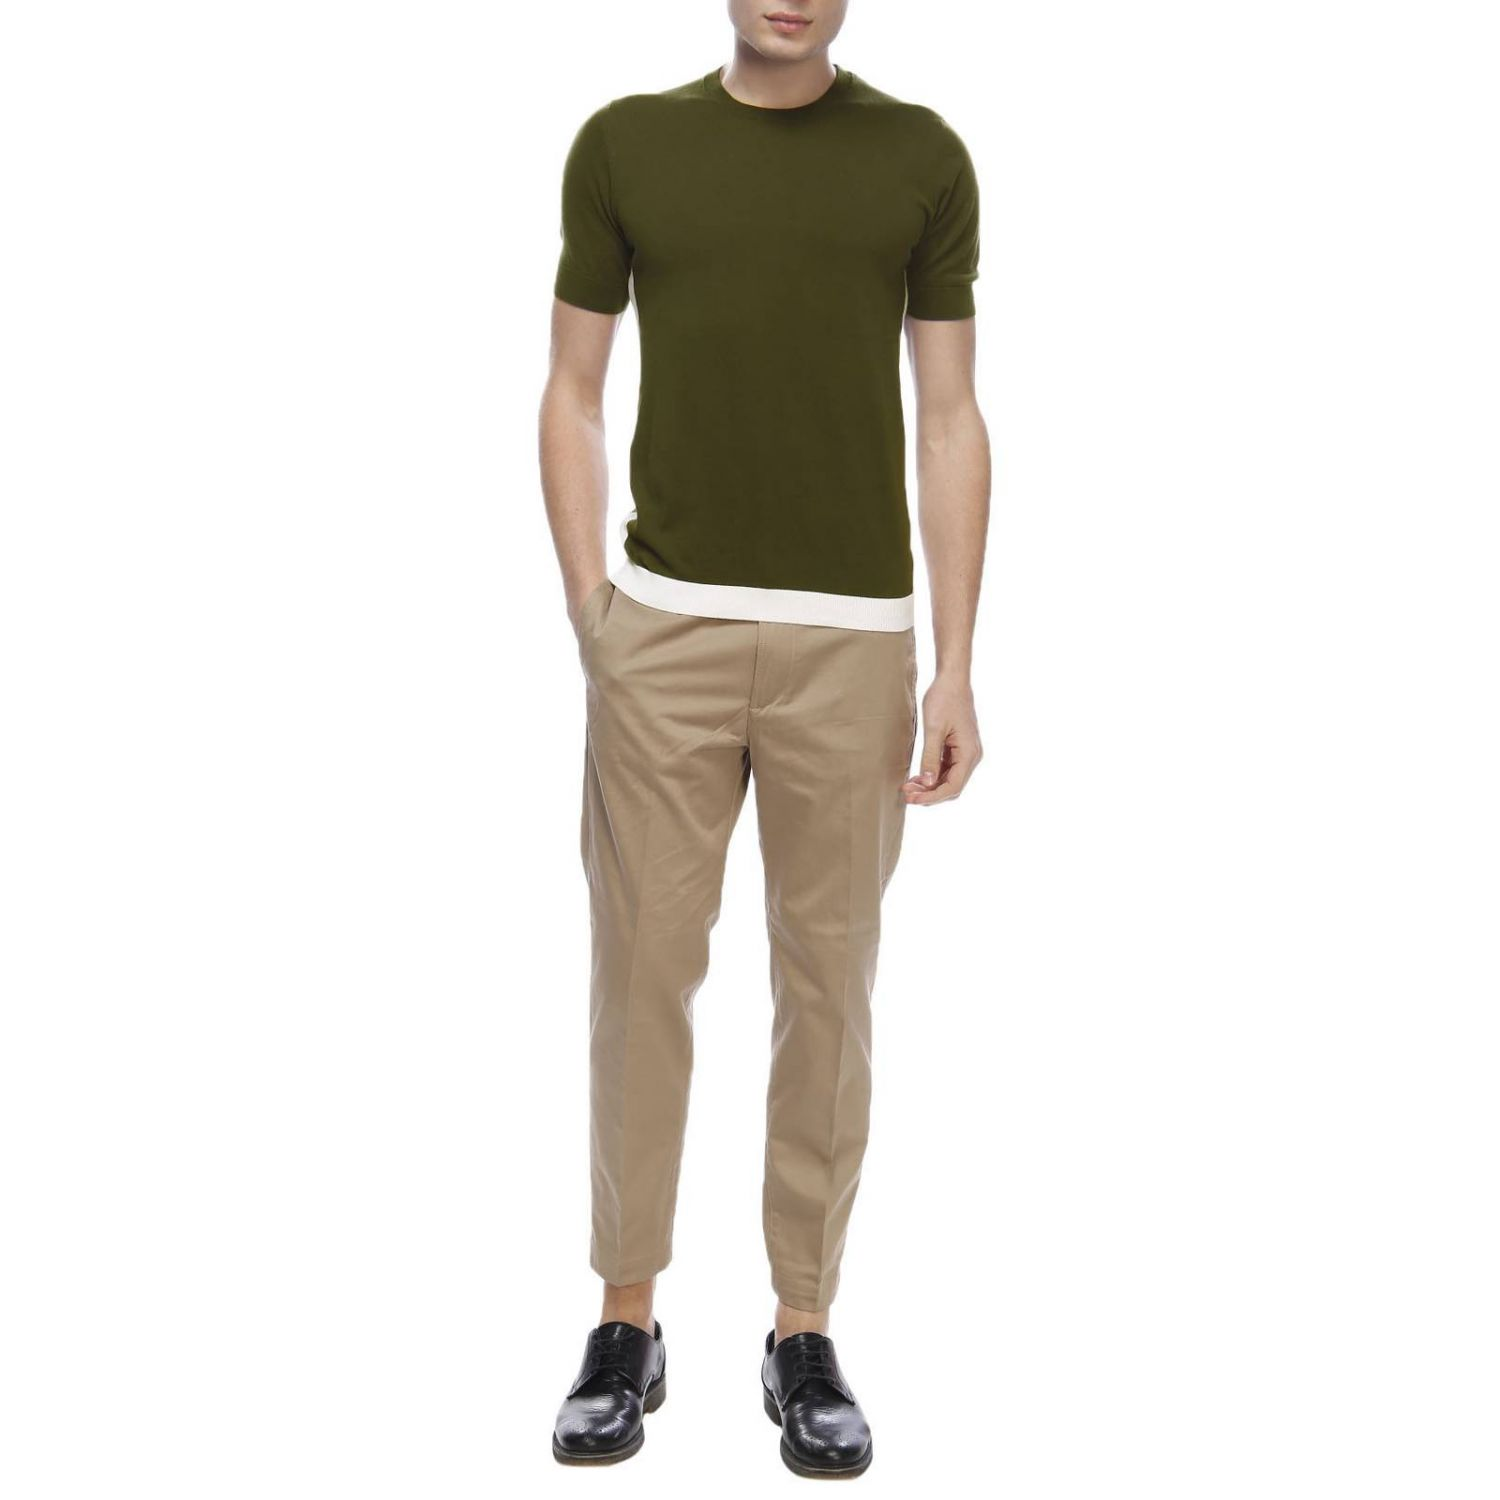 Pull homme Paolo Pecora vert militaire 4